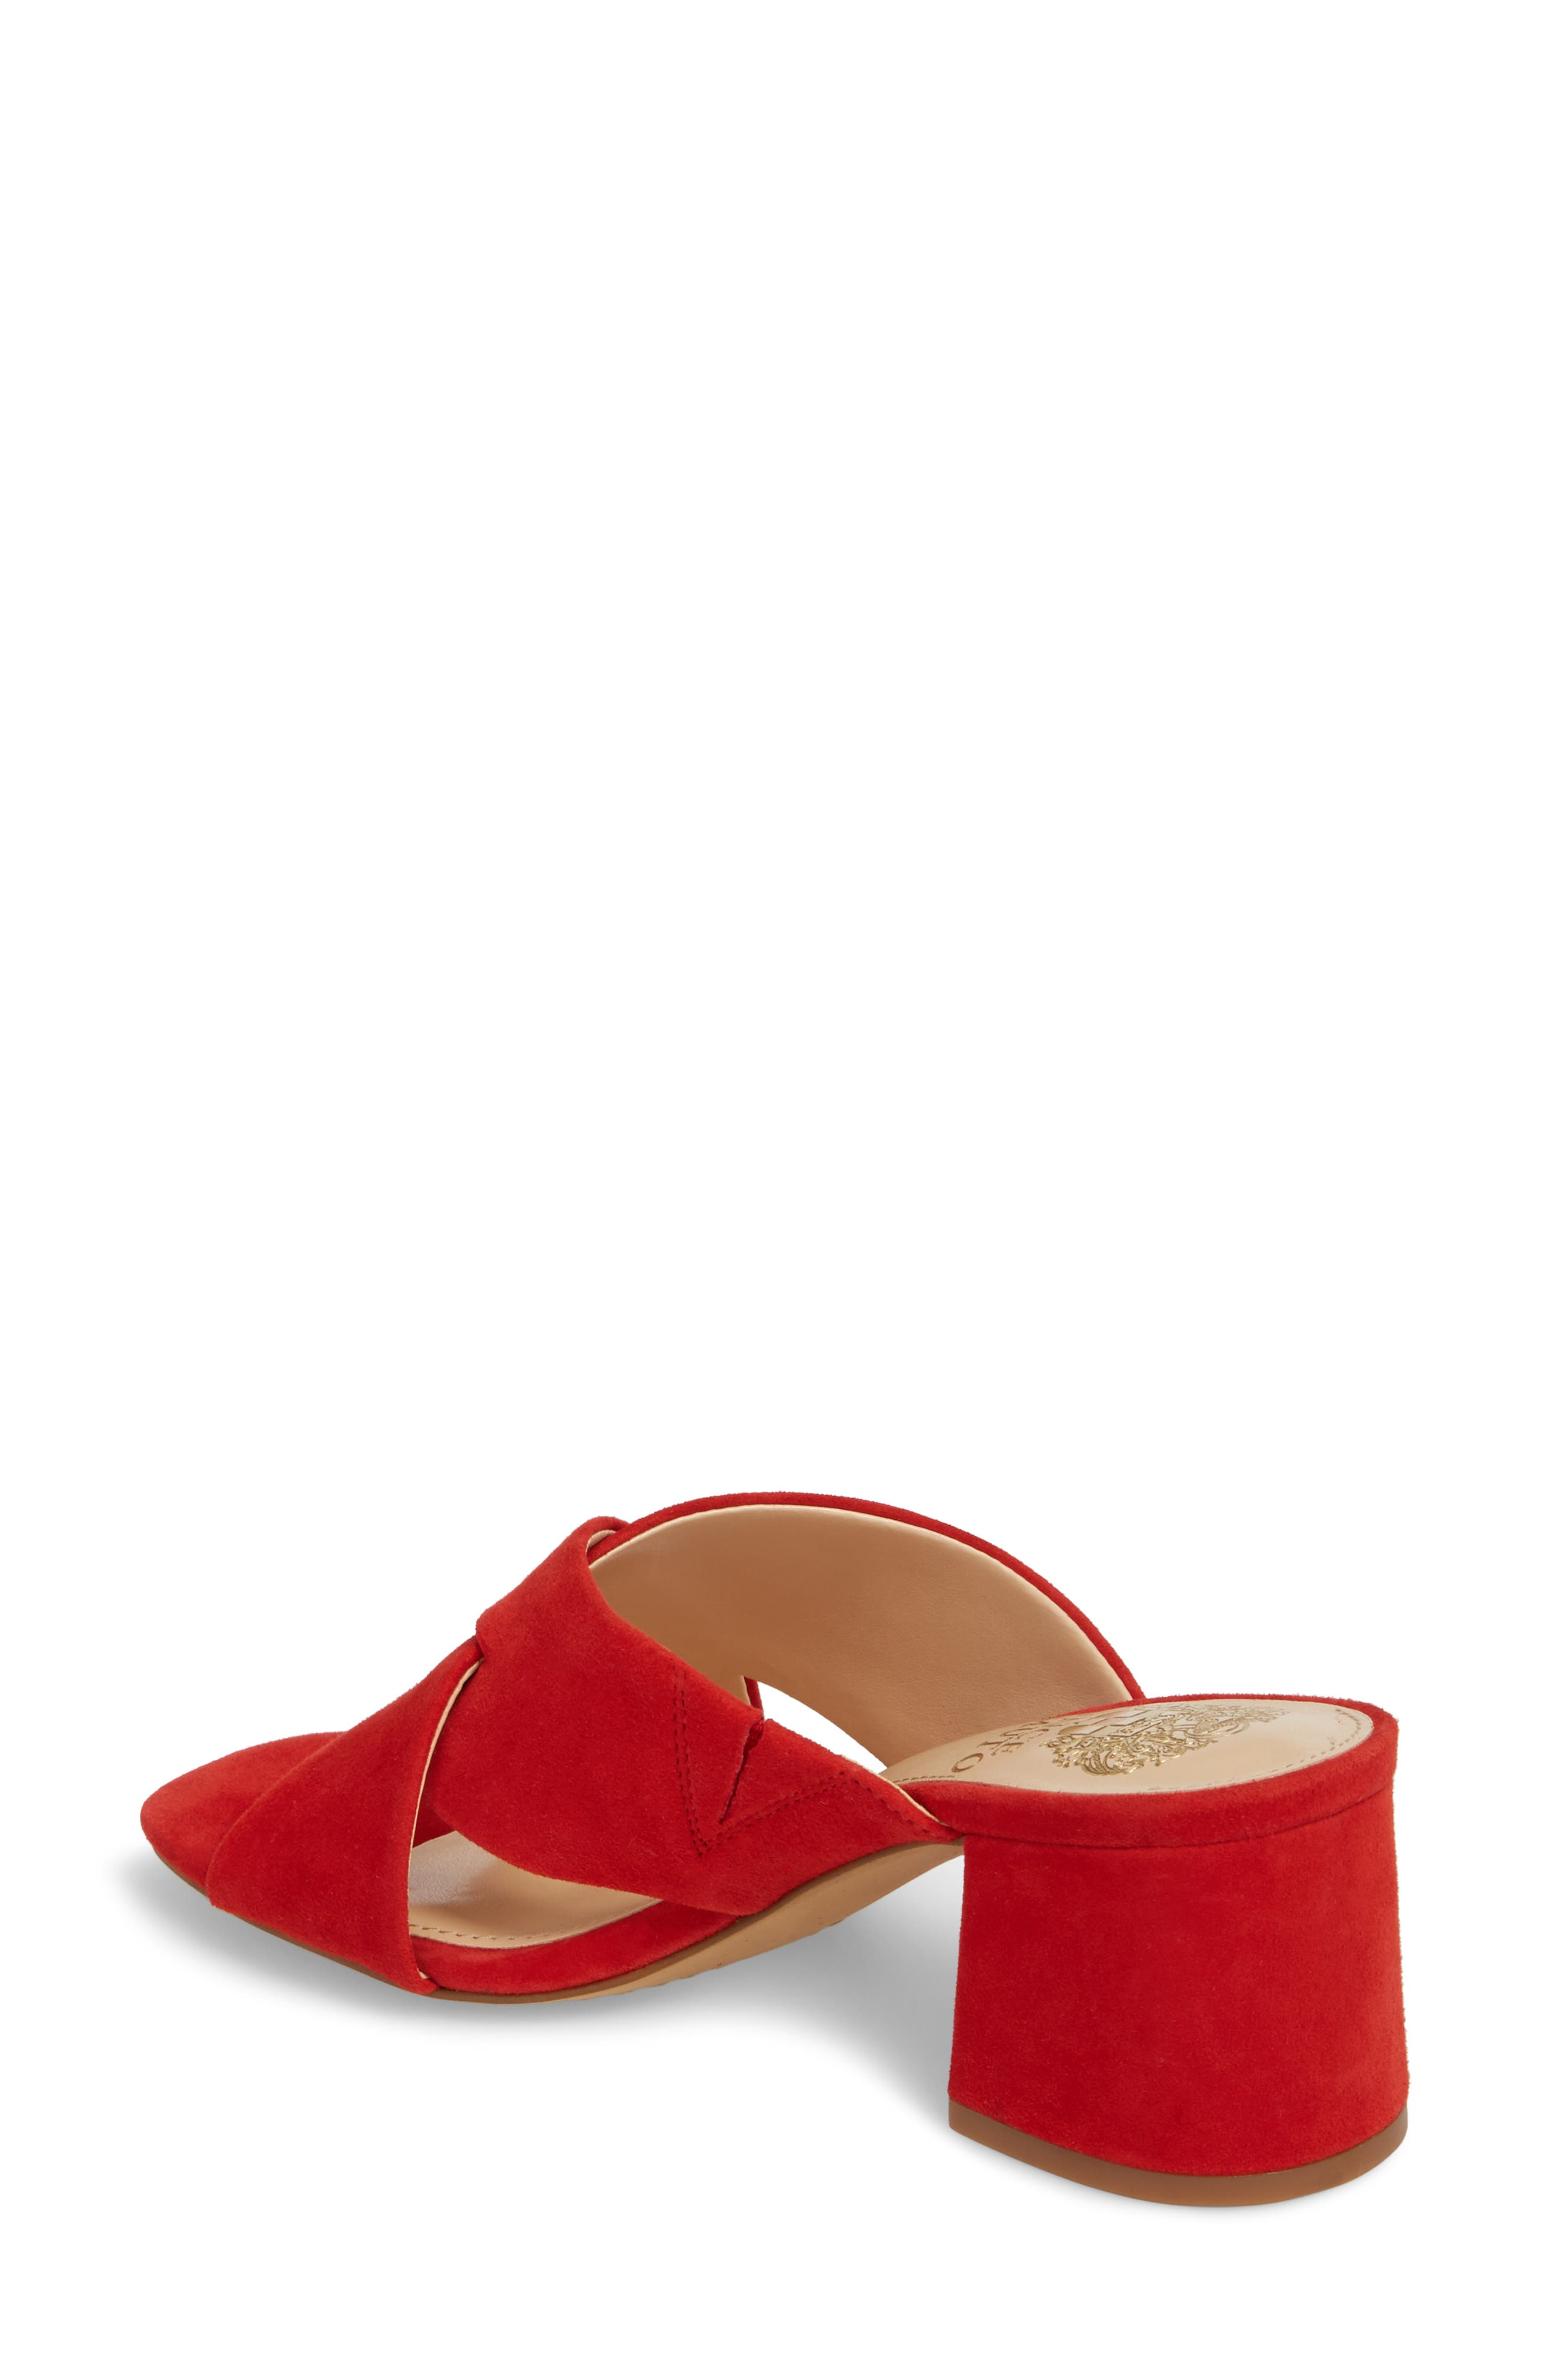 Stania Sandal,                             Alternate thumbnail 2, color,                             RED HOT RIO SUEDE